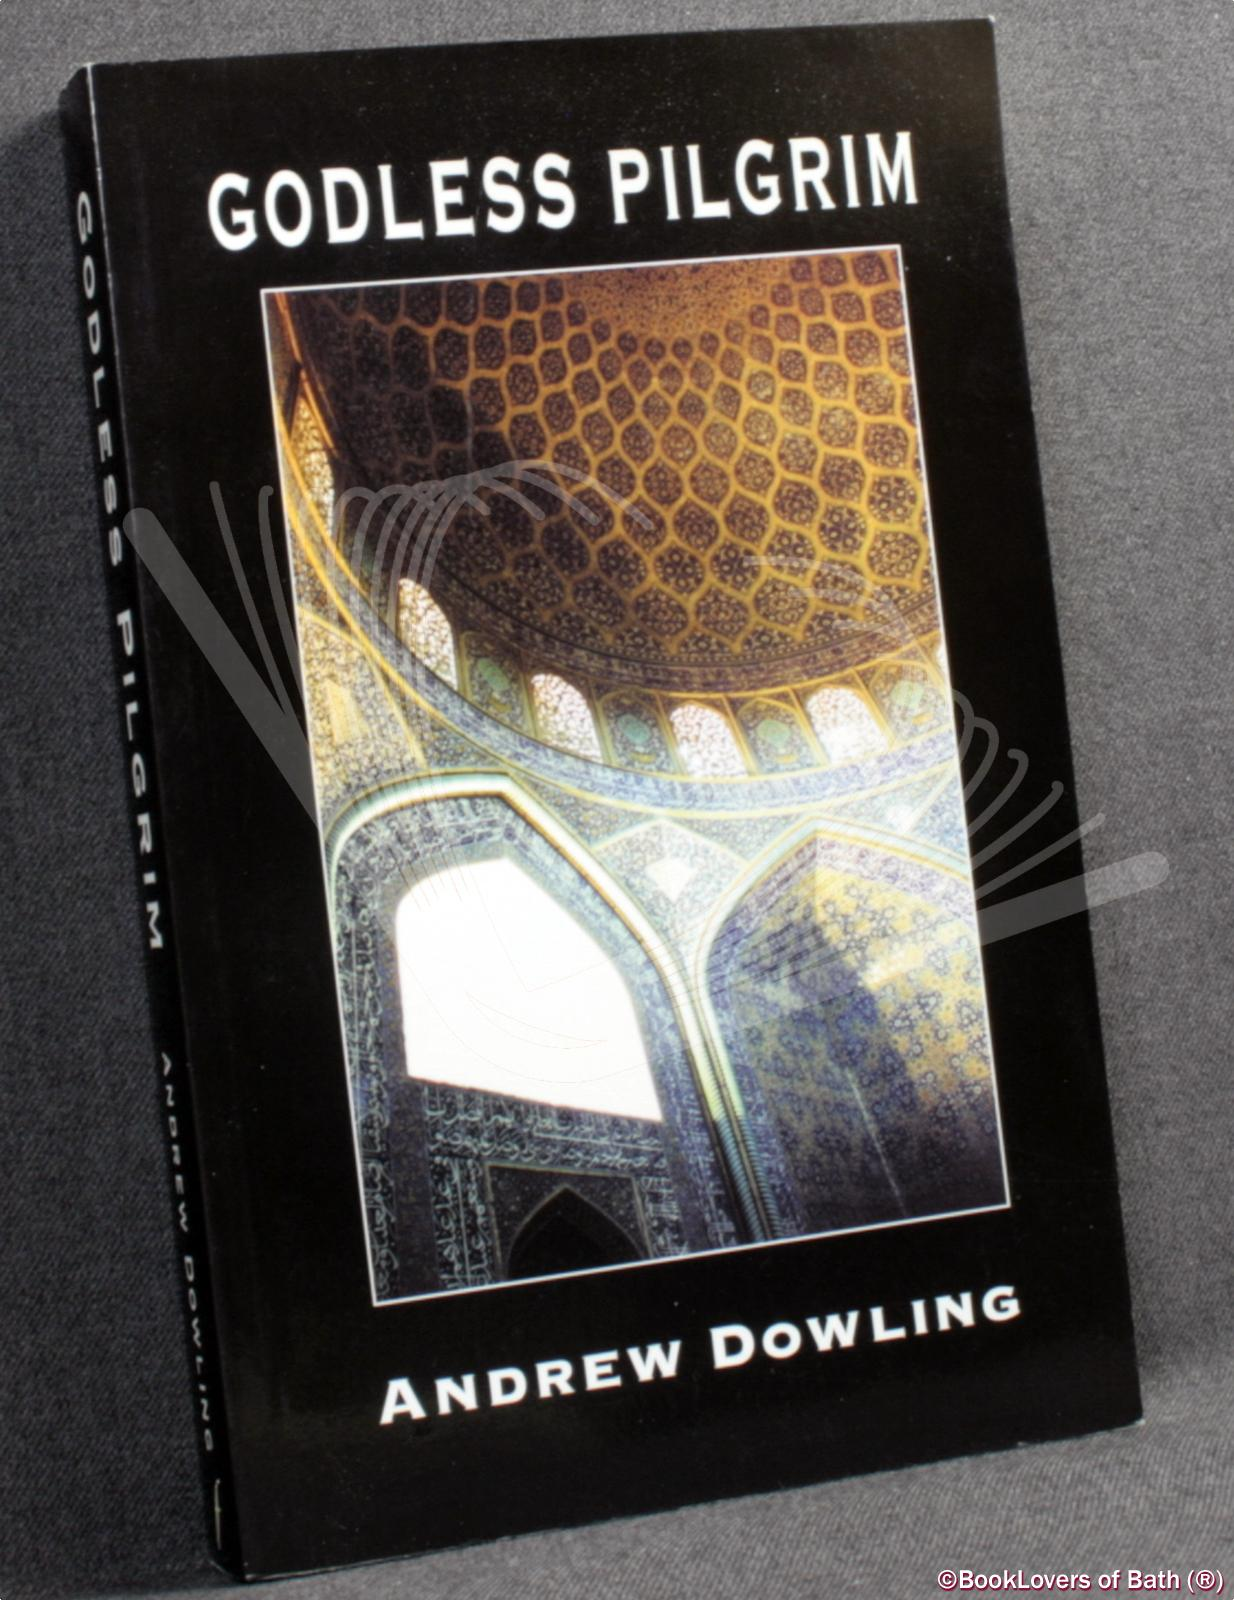 The Godless Pilgrim - Andrew Dowling